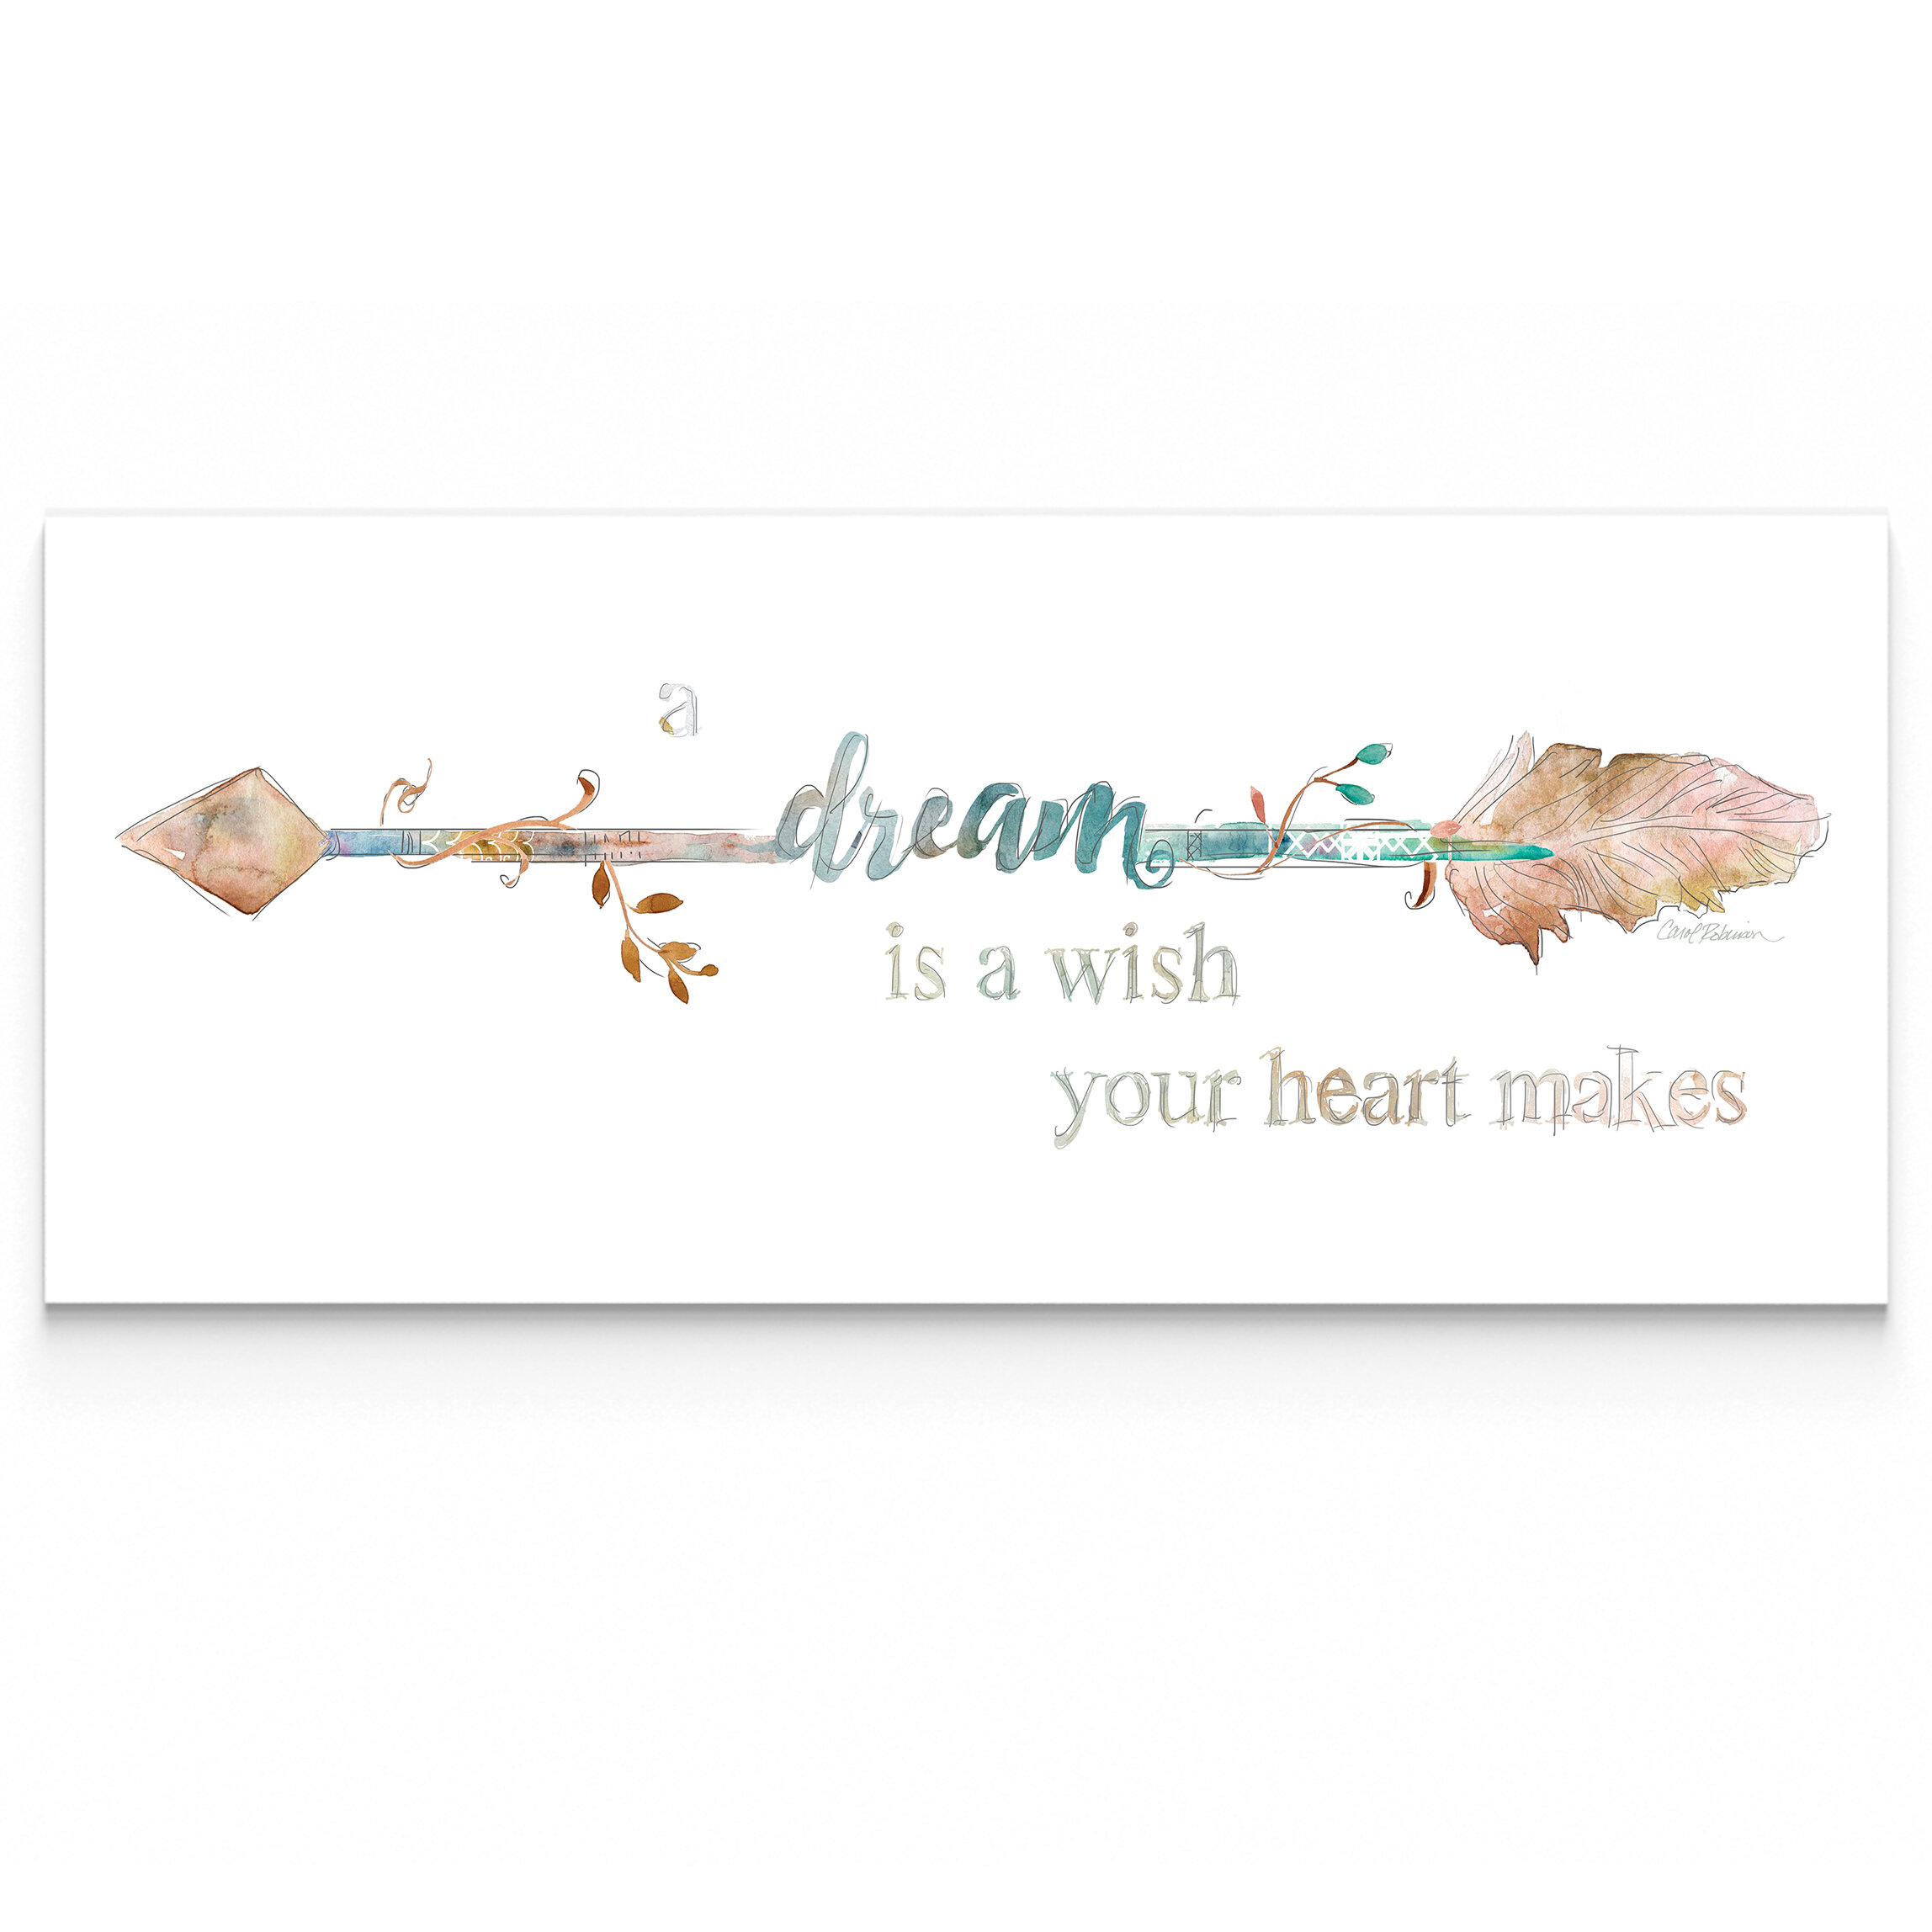 Wexfordhome dream arrow by carol robinson textual art on wrapped canvas reviews wayfair